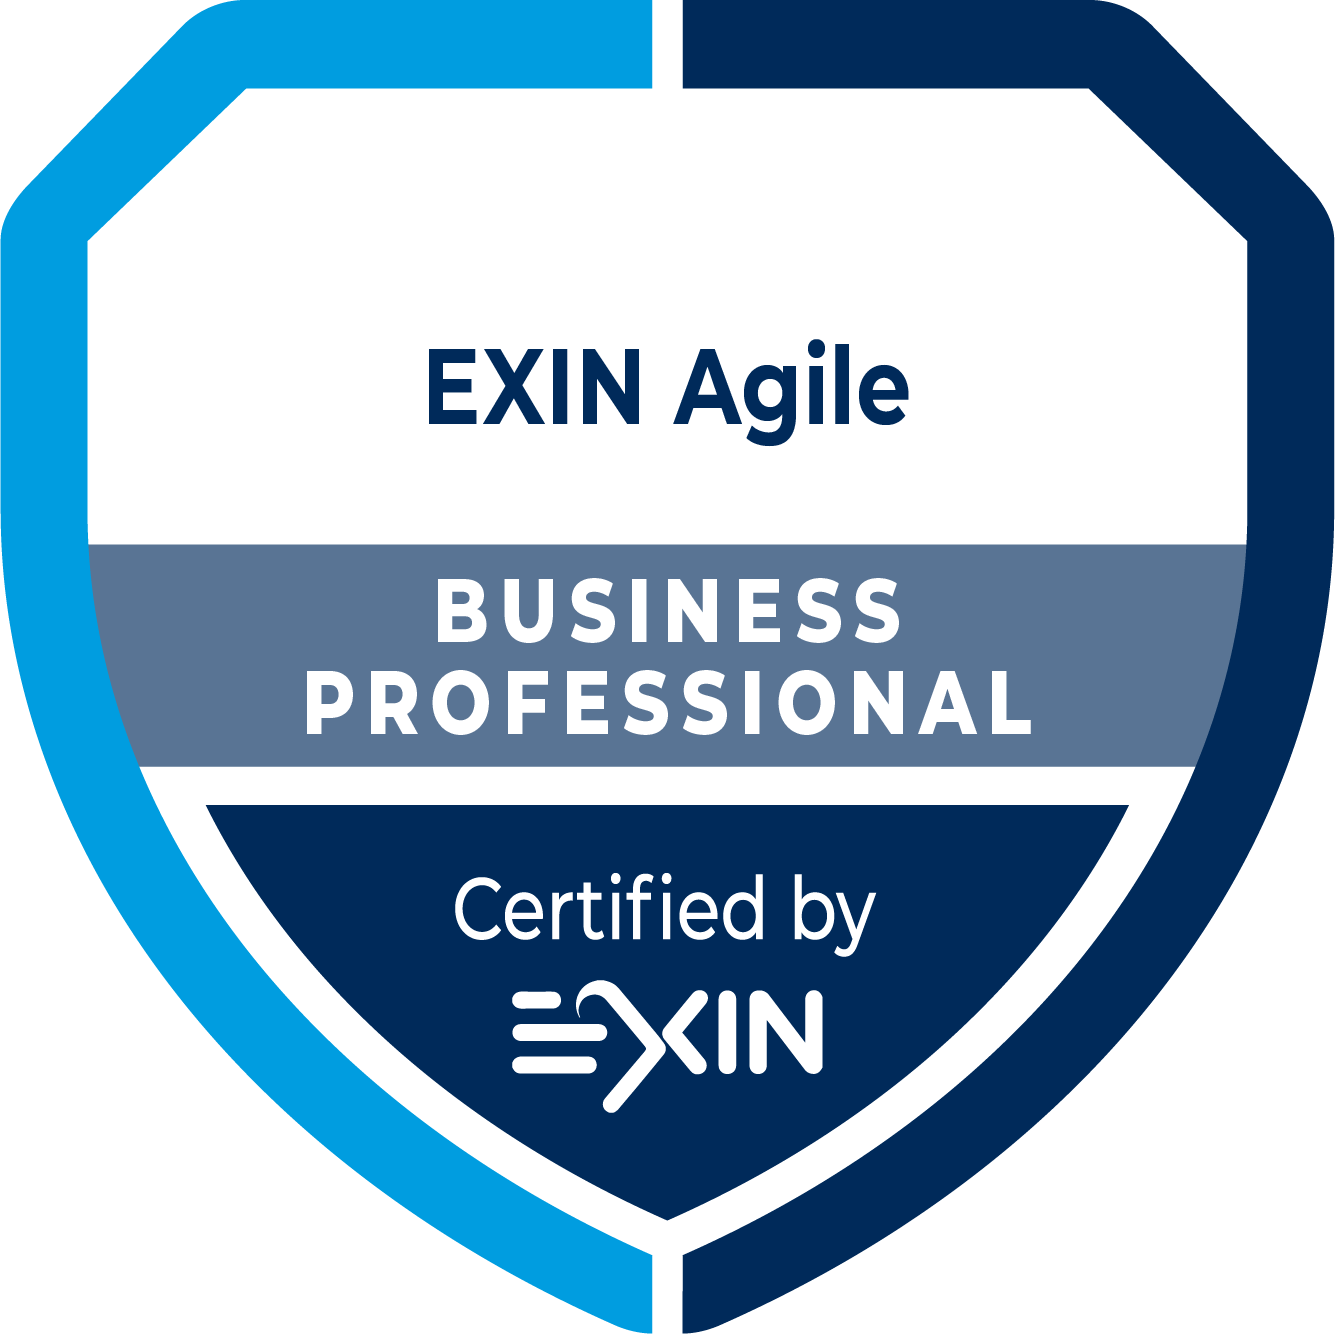 EXIN Agile Business Professional